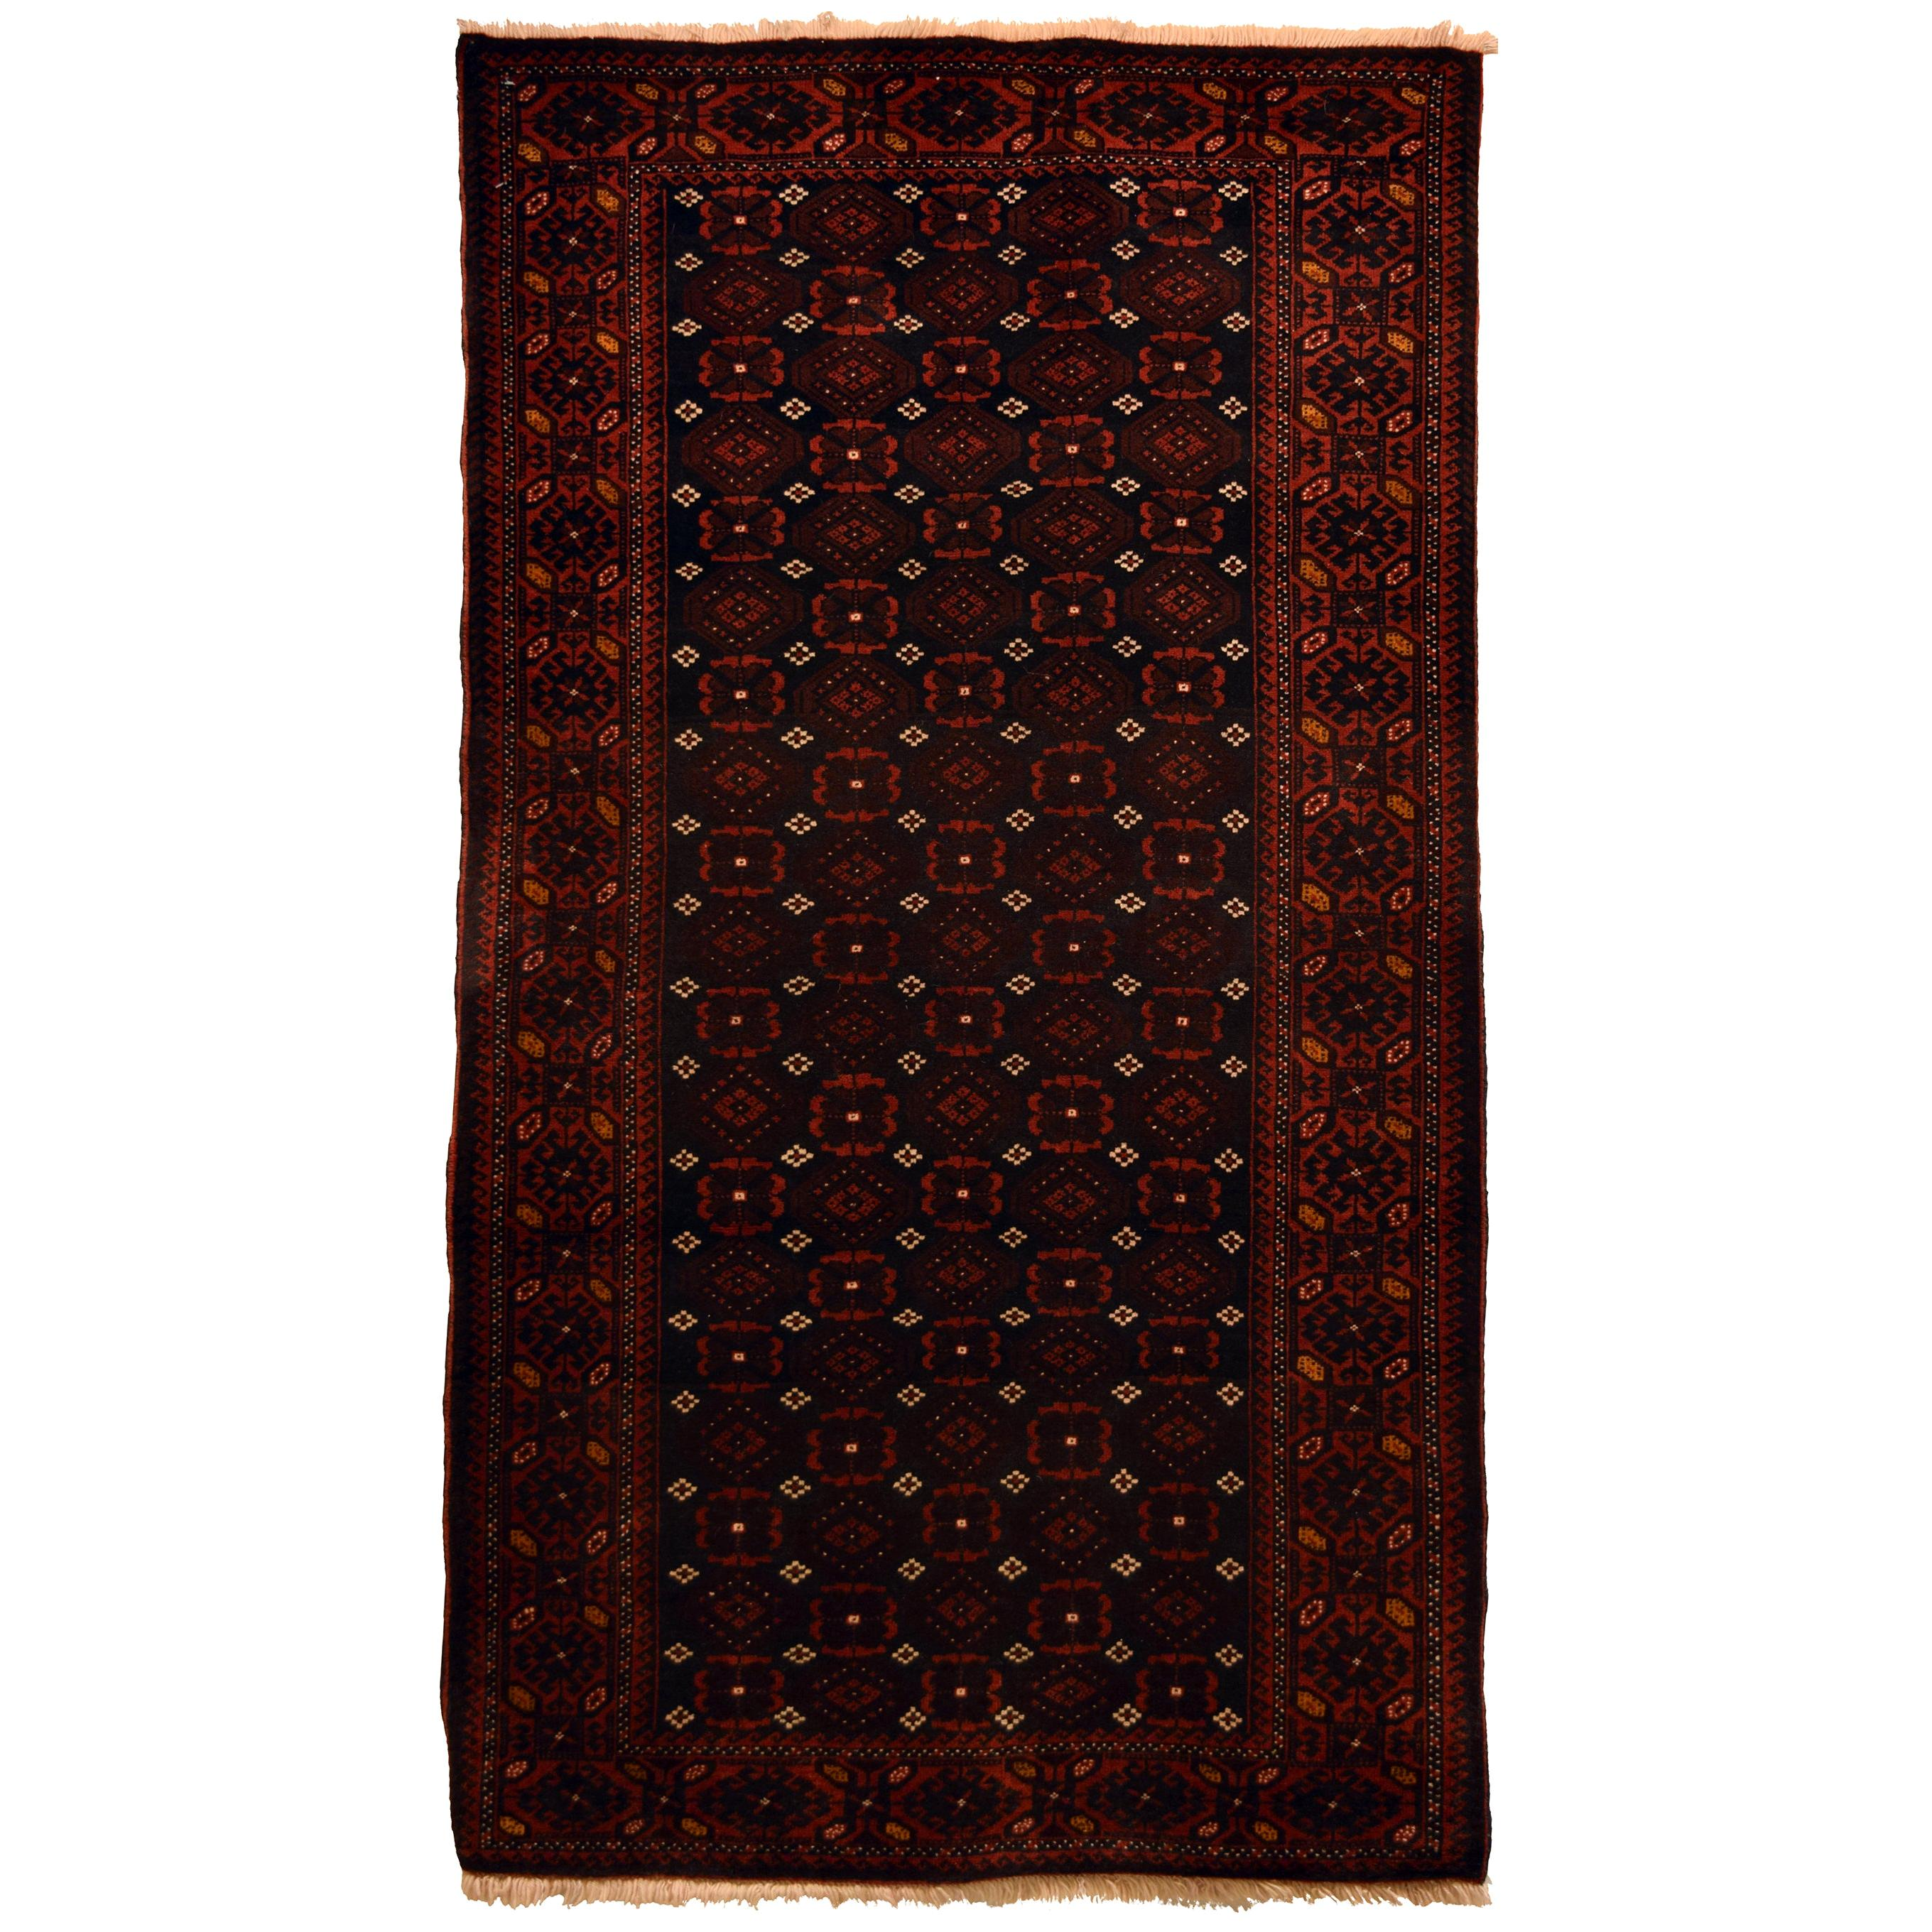 Traditional Red, Brown, and Cream Wool Persian Balouchi Carpet